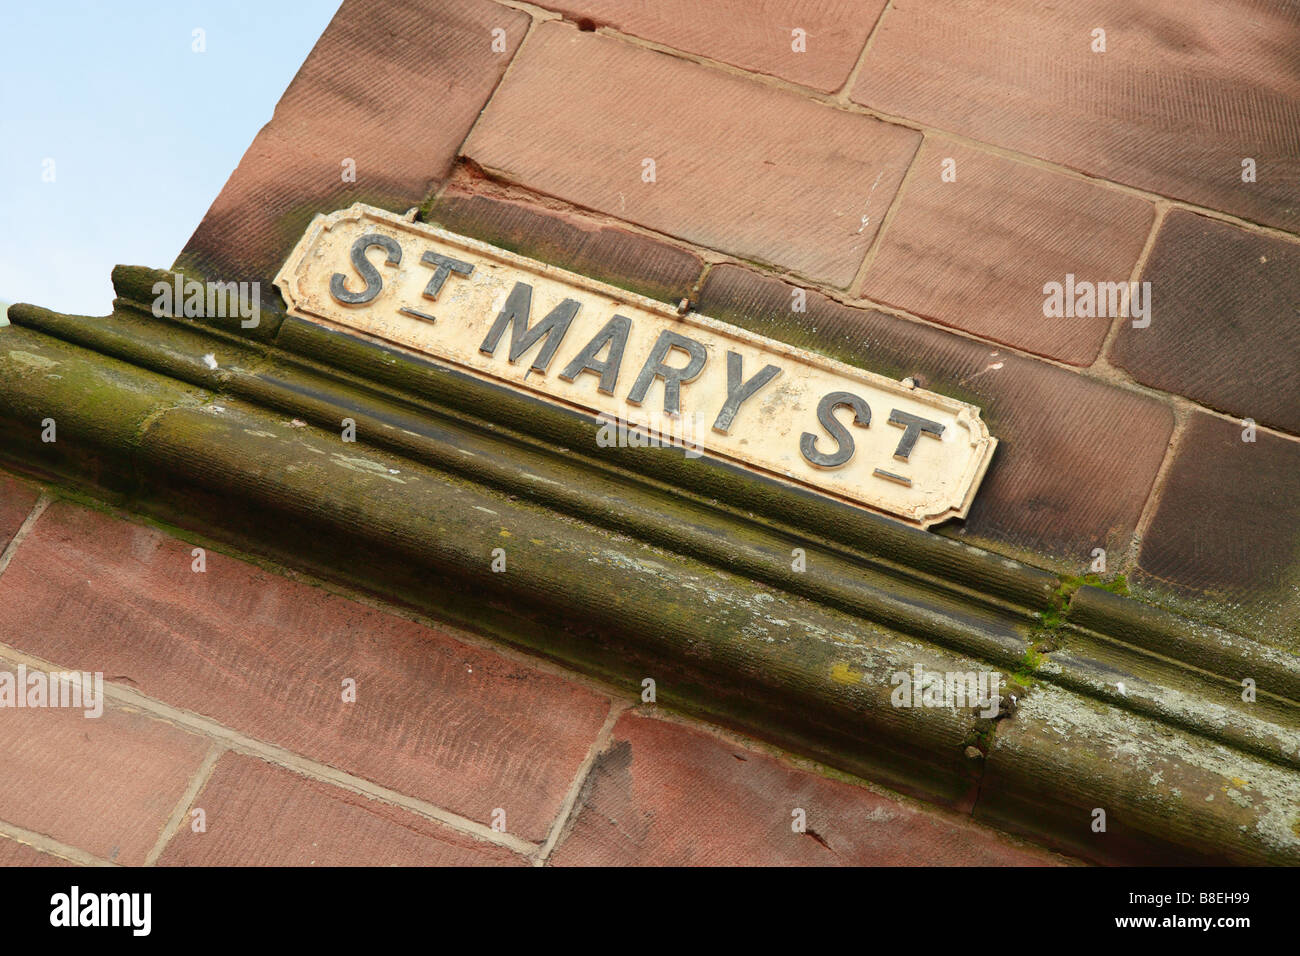 Road name on a street corner - Stock Image